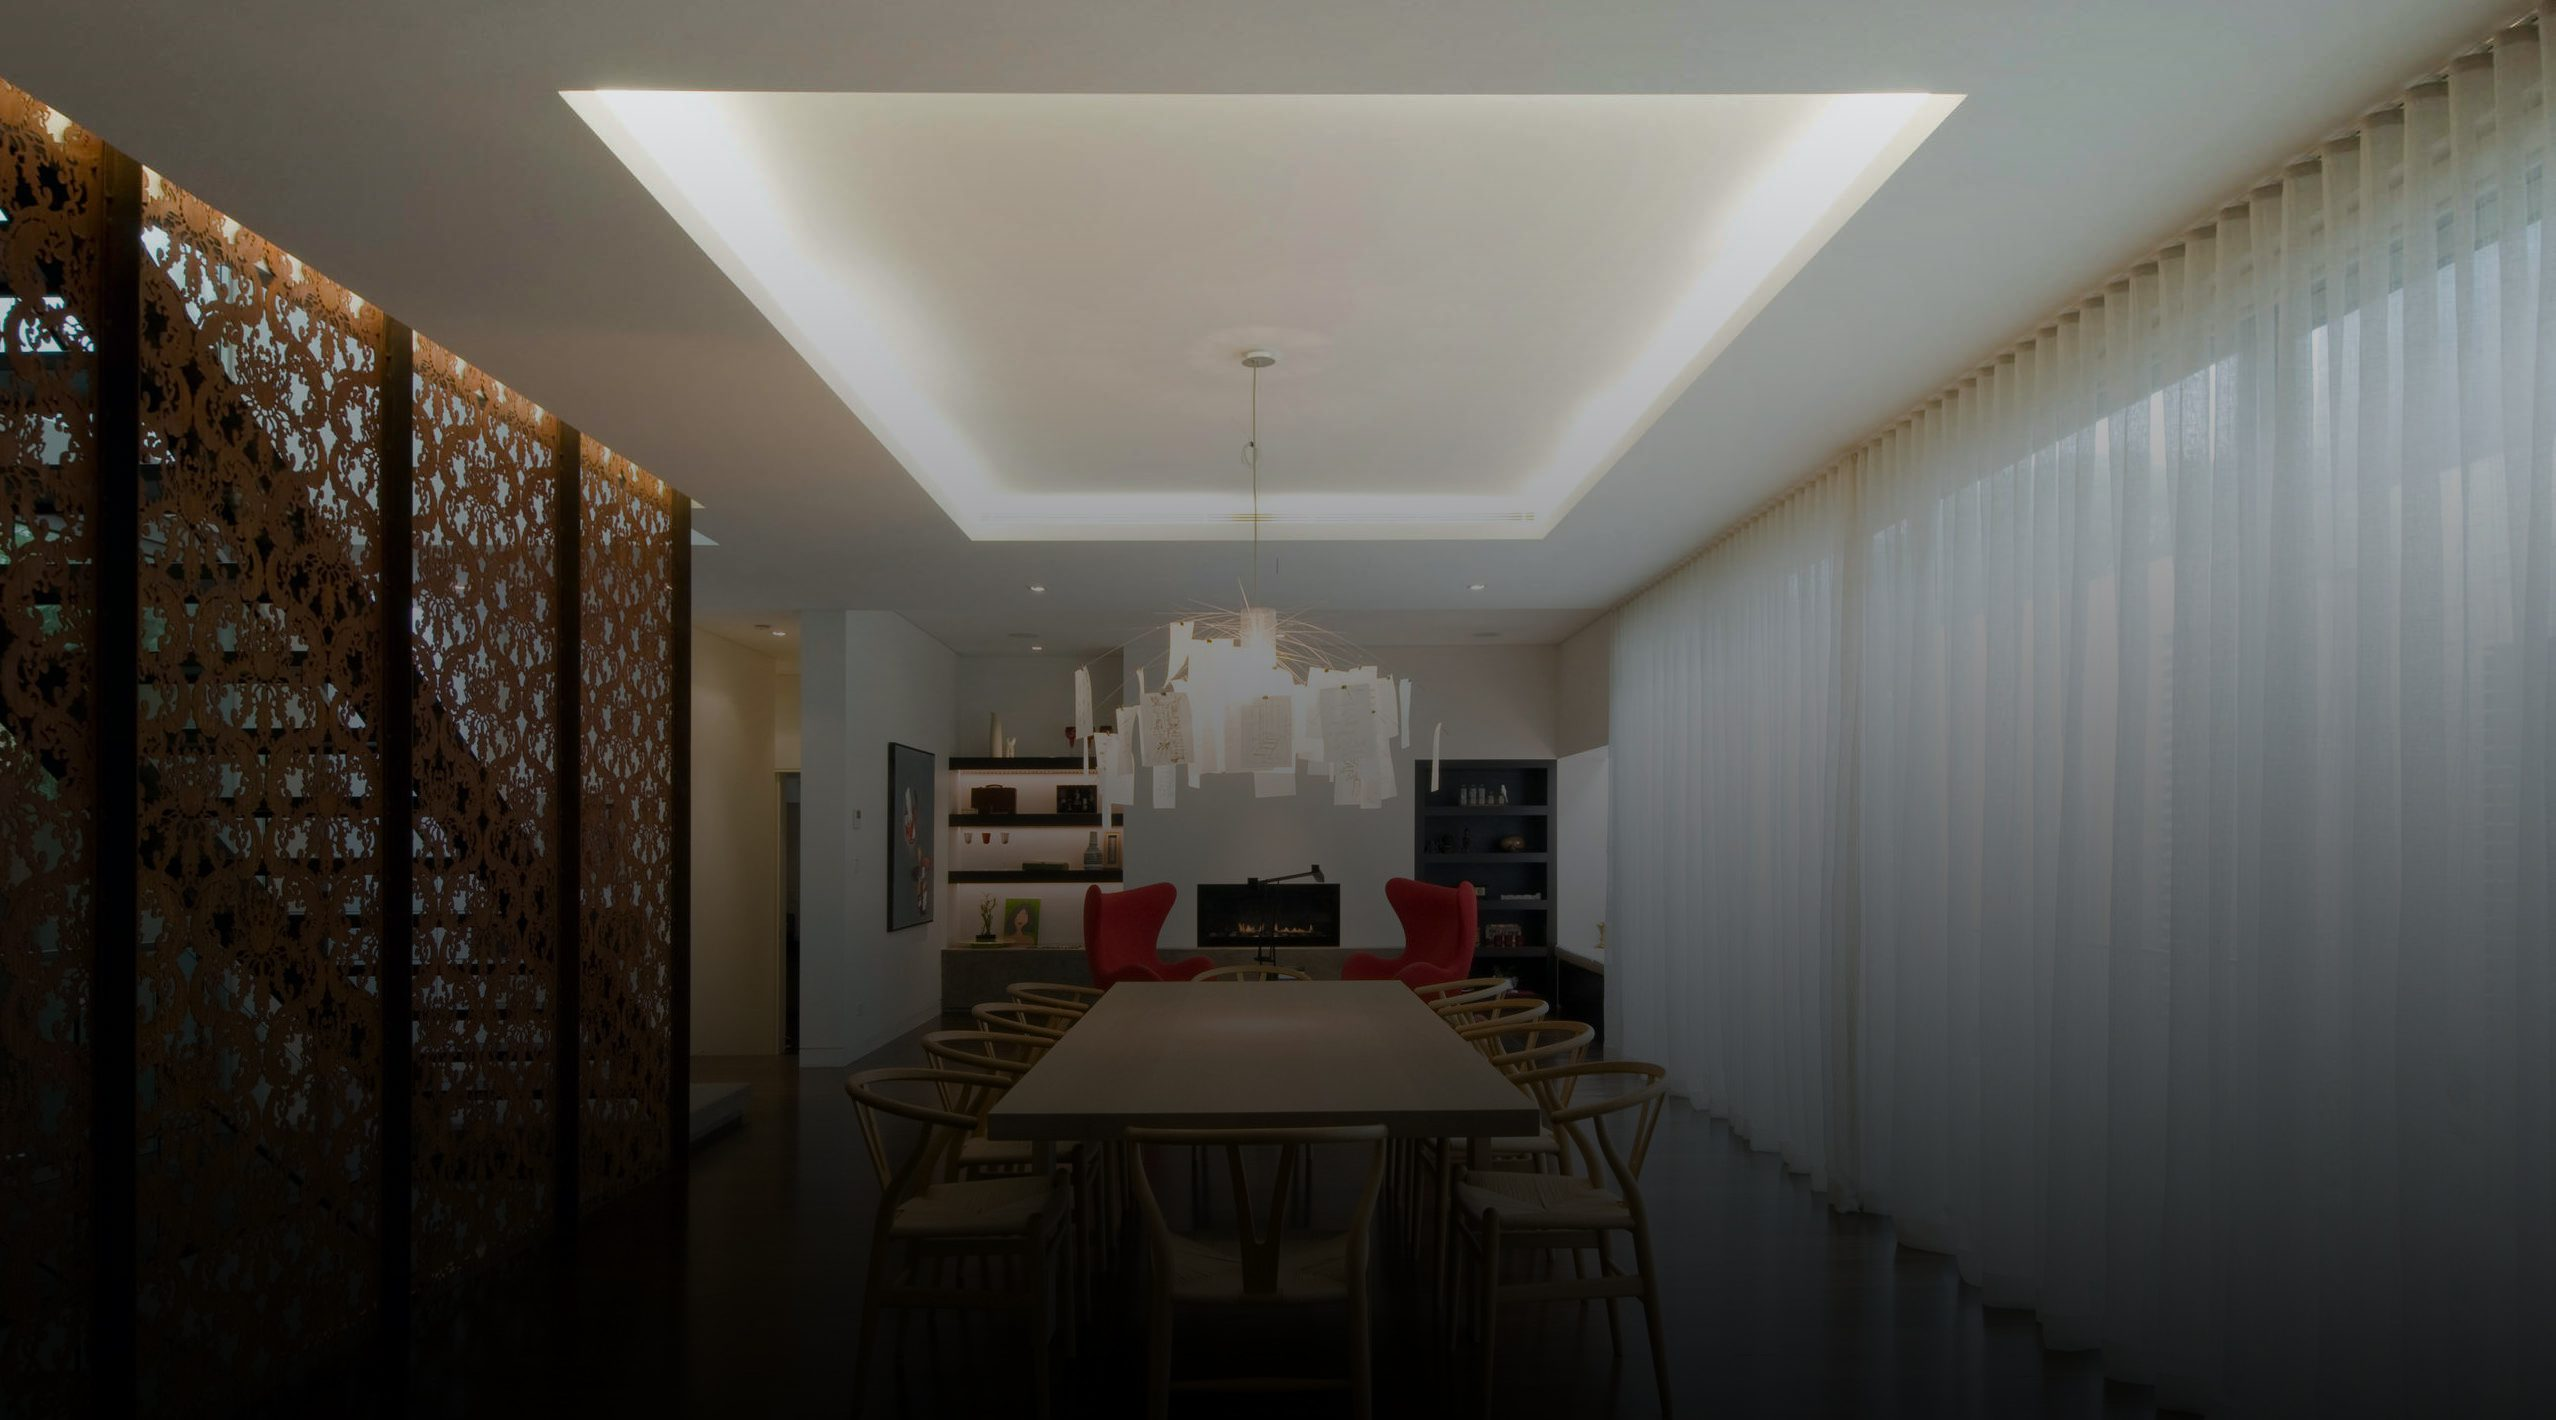 ceiling contractor singapore